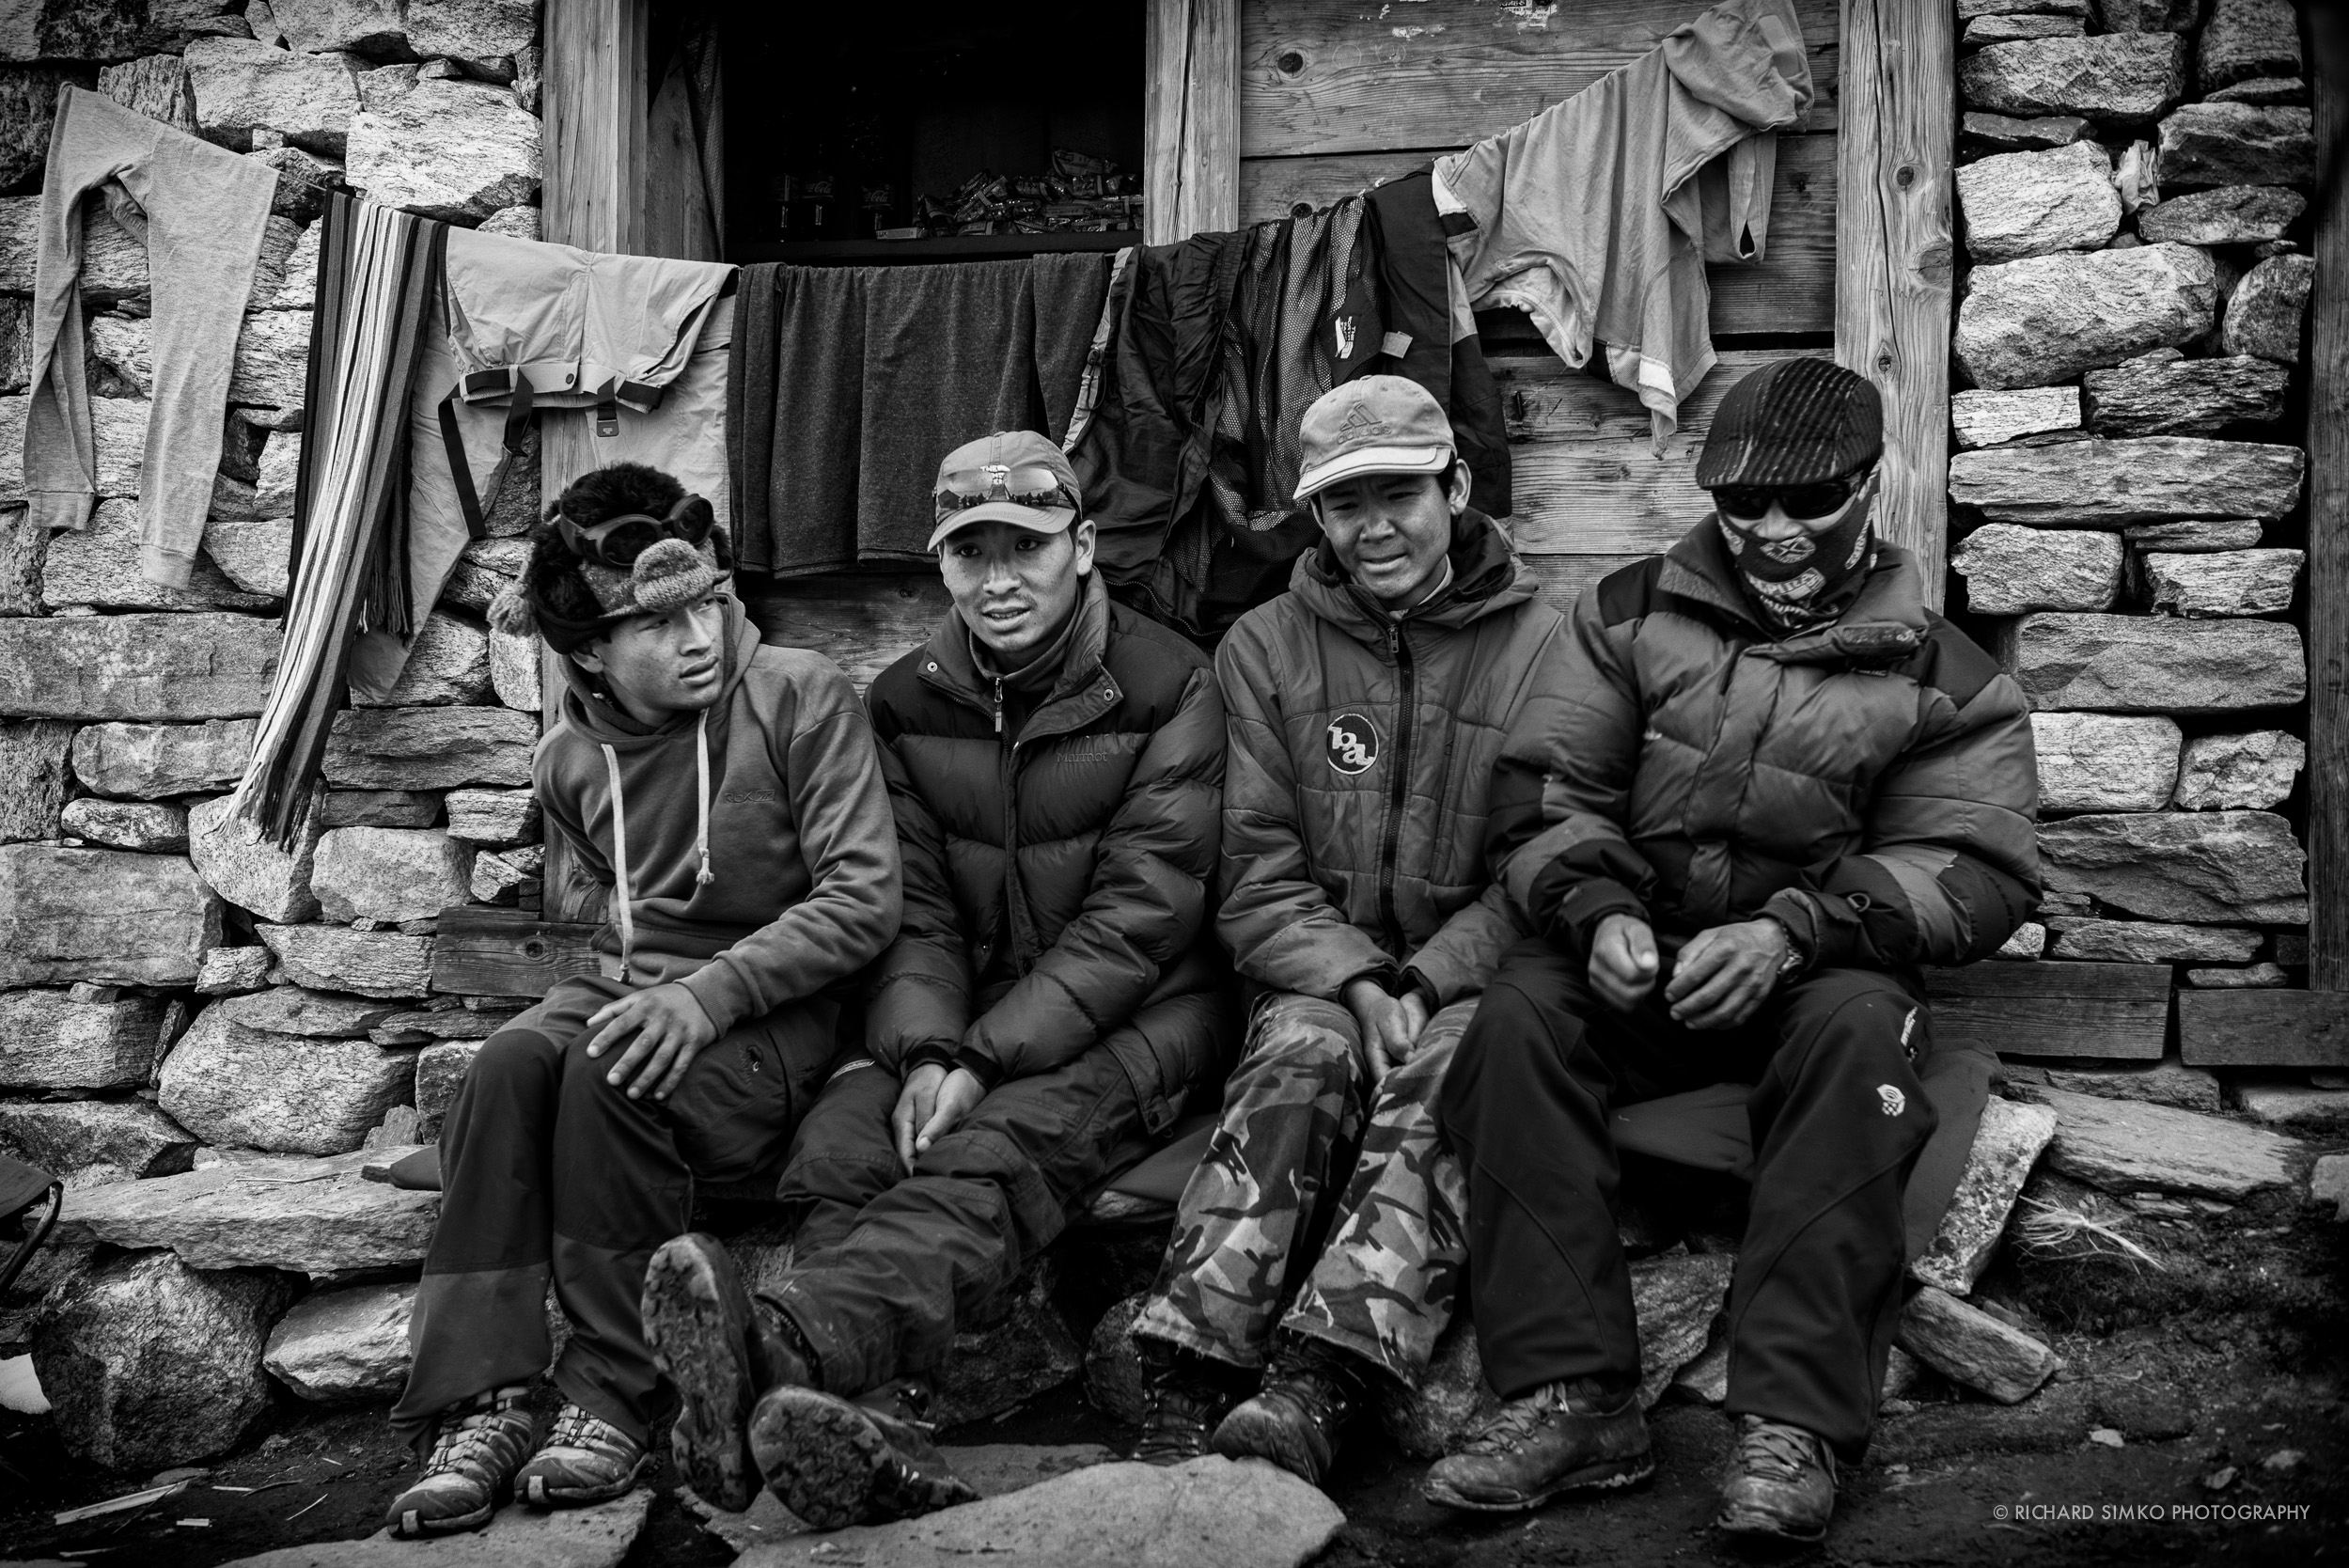 Sherpa porters resting in Khare. Second from left is Sonam Sherpa, my porter.